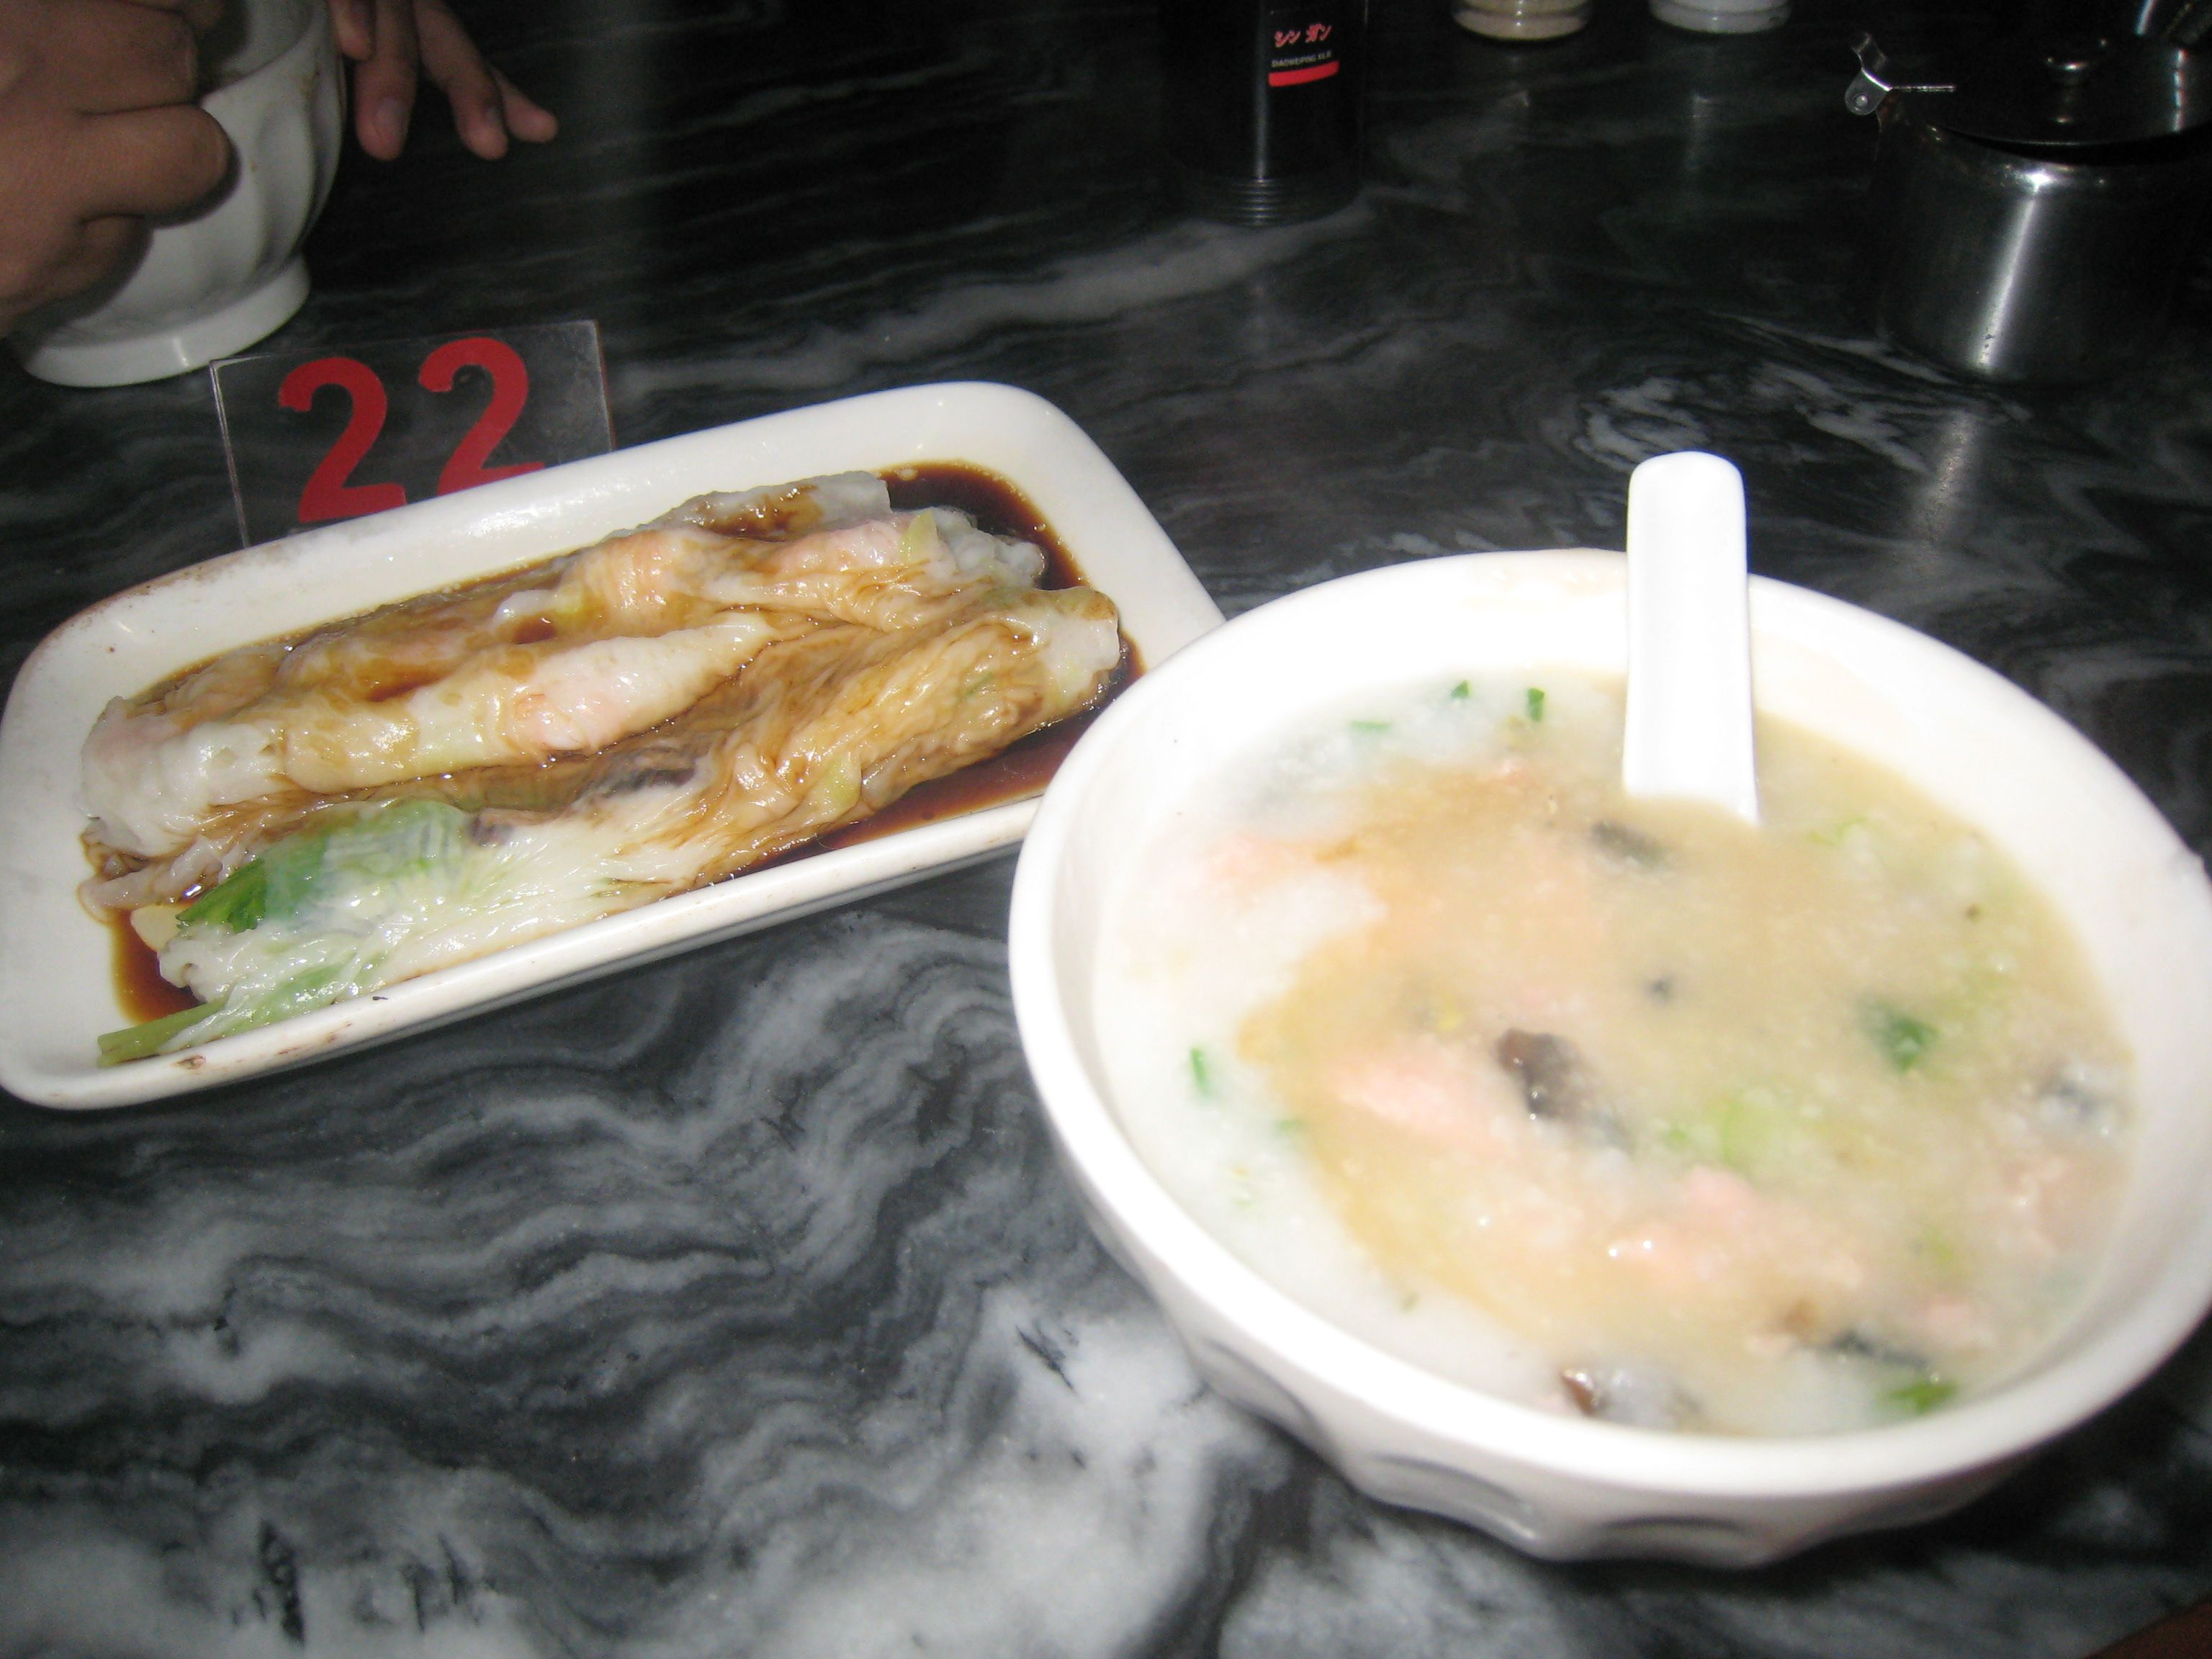 Breakfast at guangzhou :) really miss this.